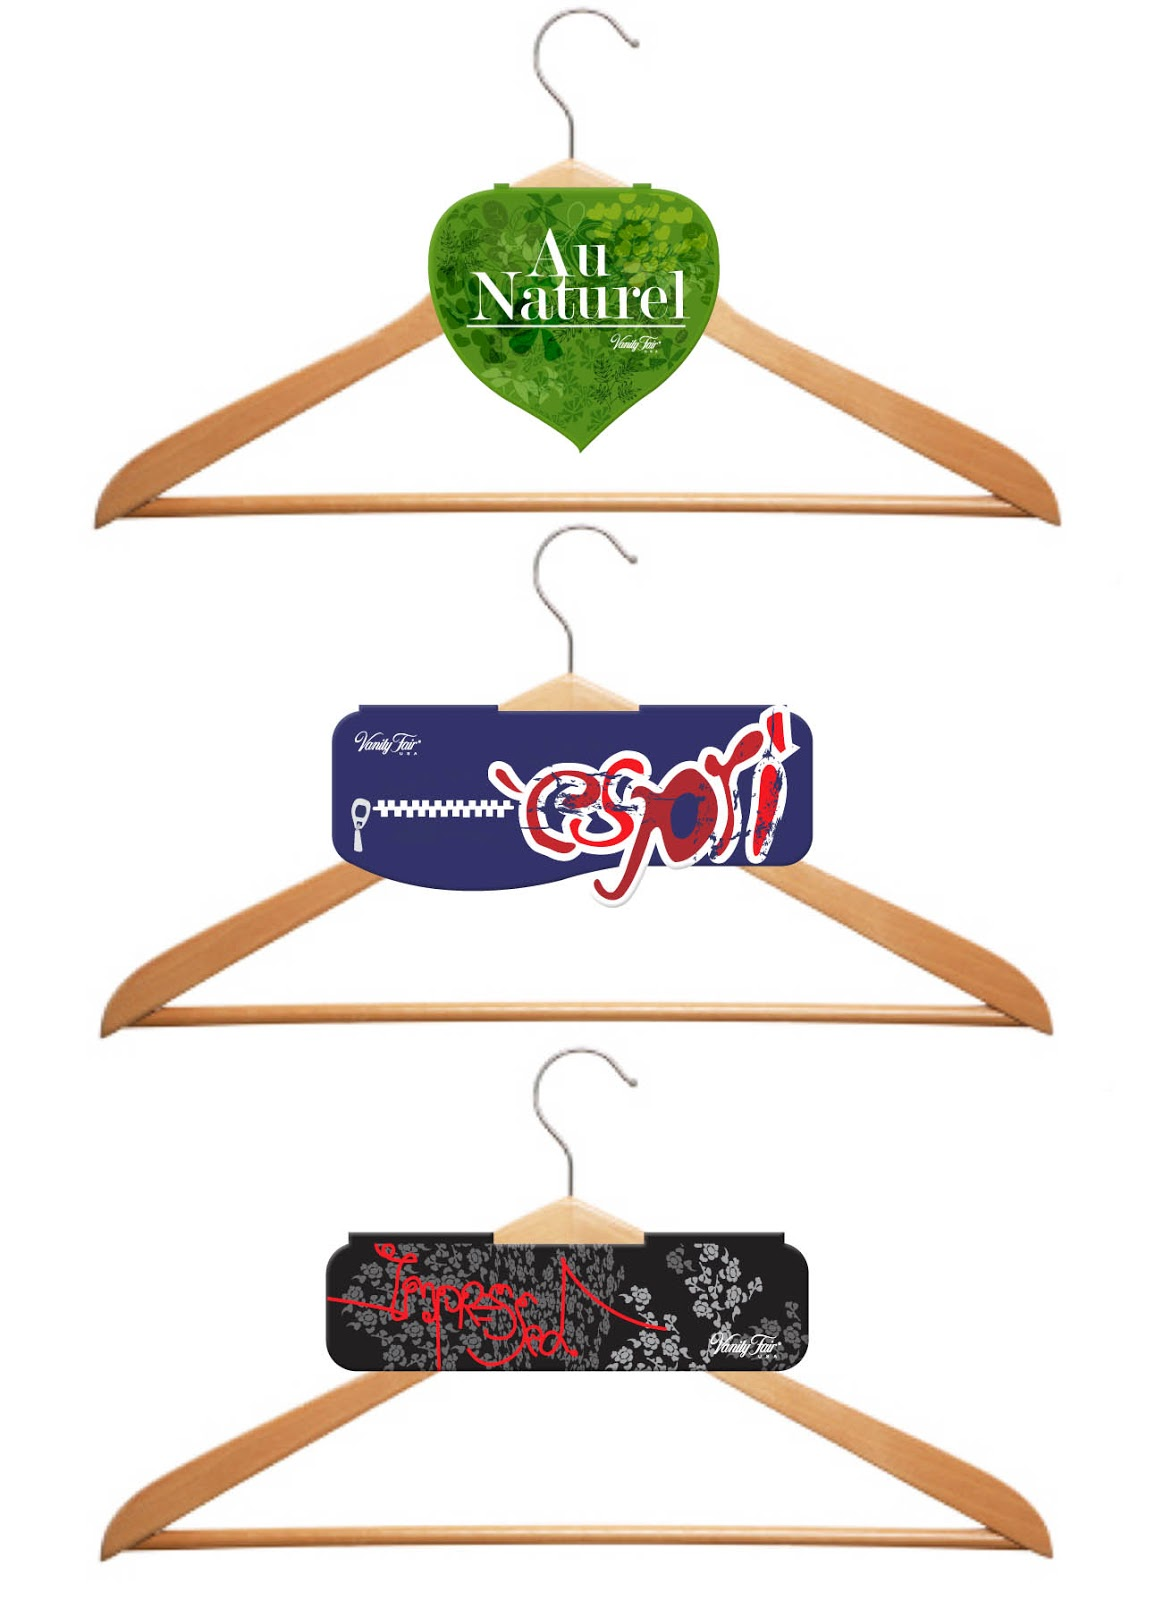 maylin graphic design: Lingerie Hanger tags designed